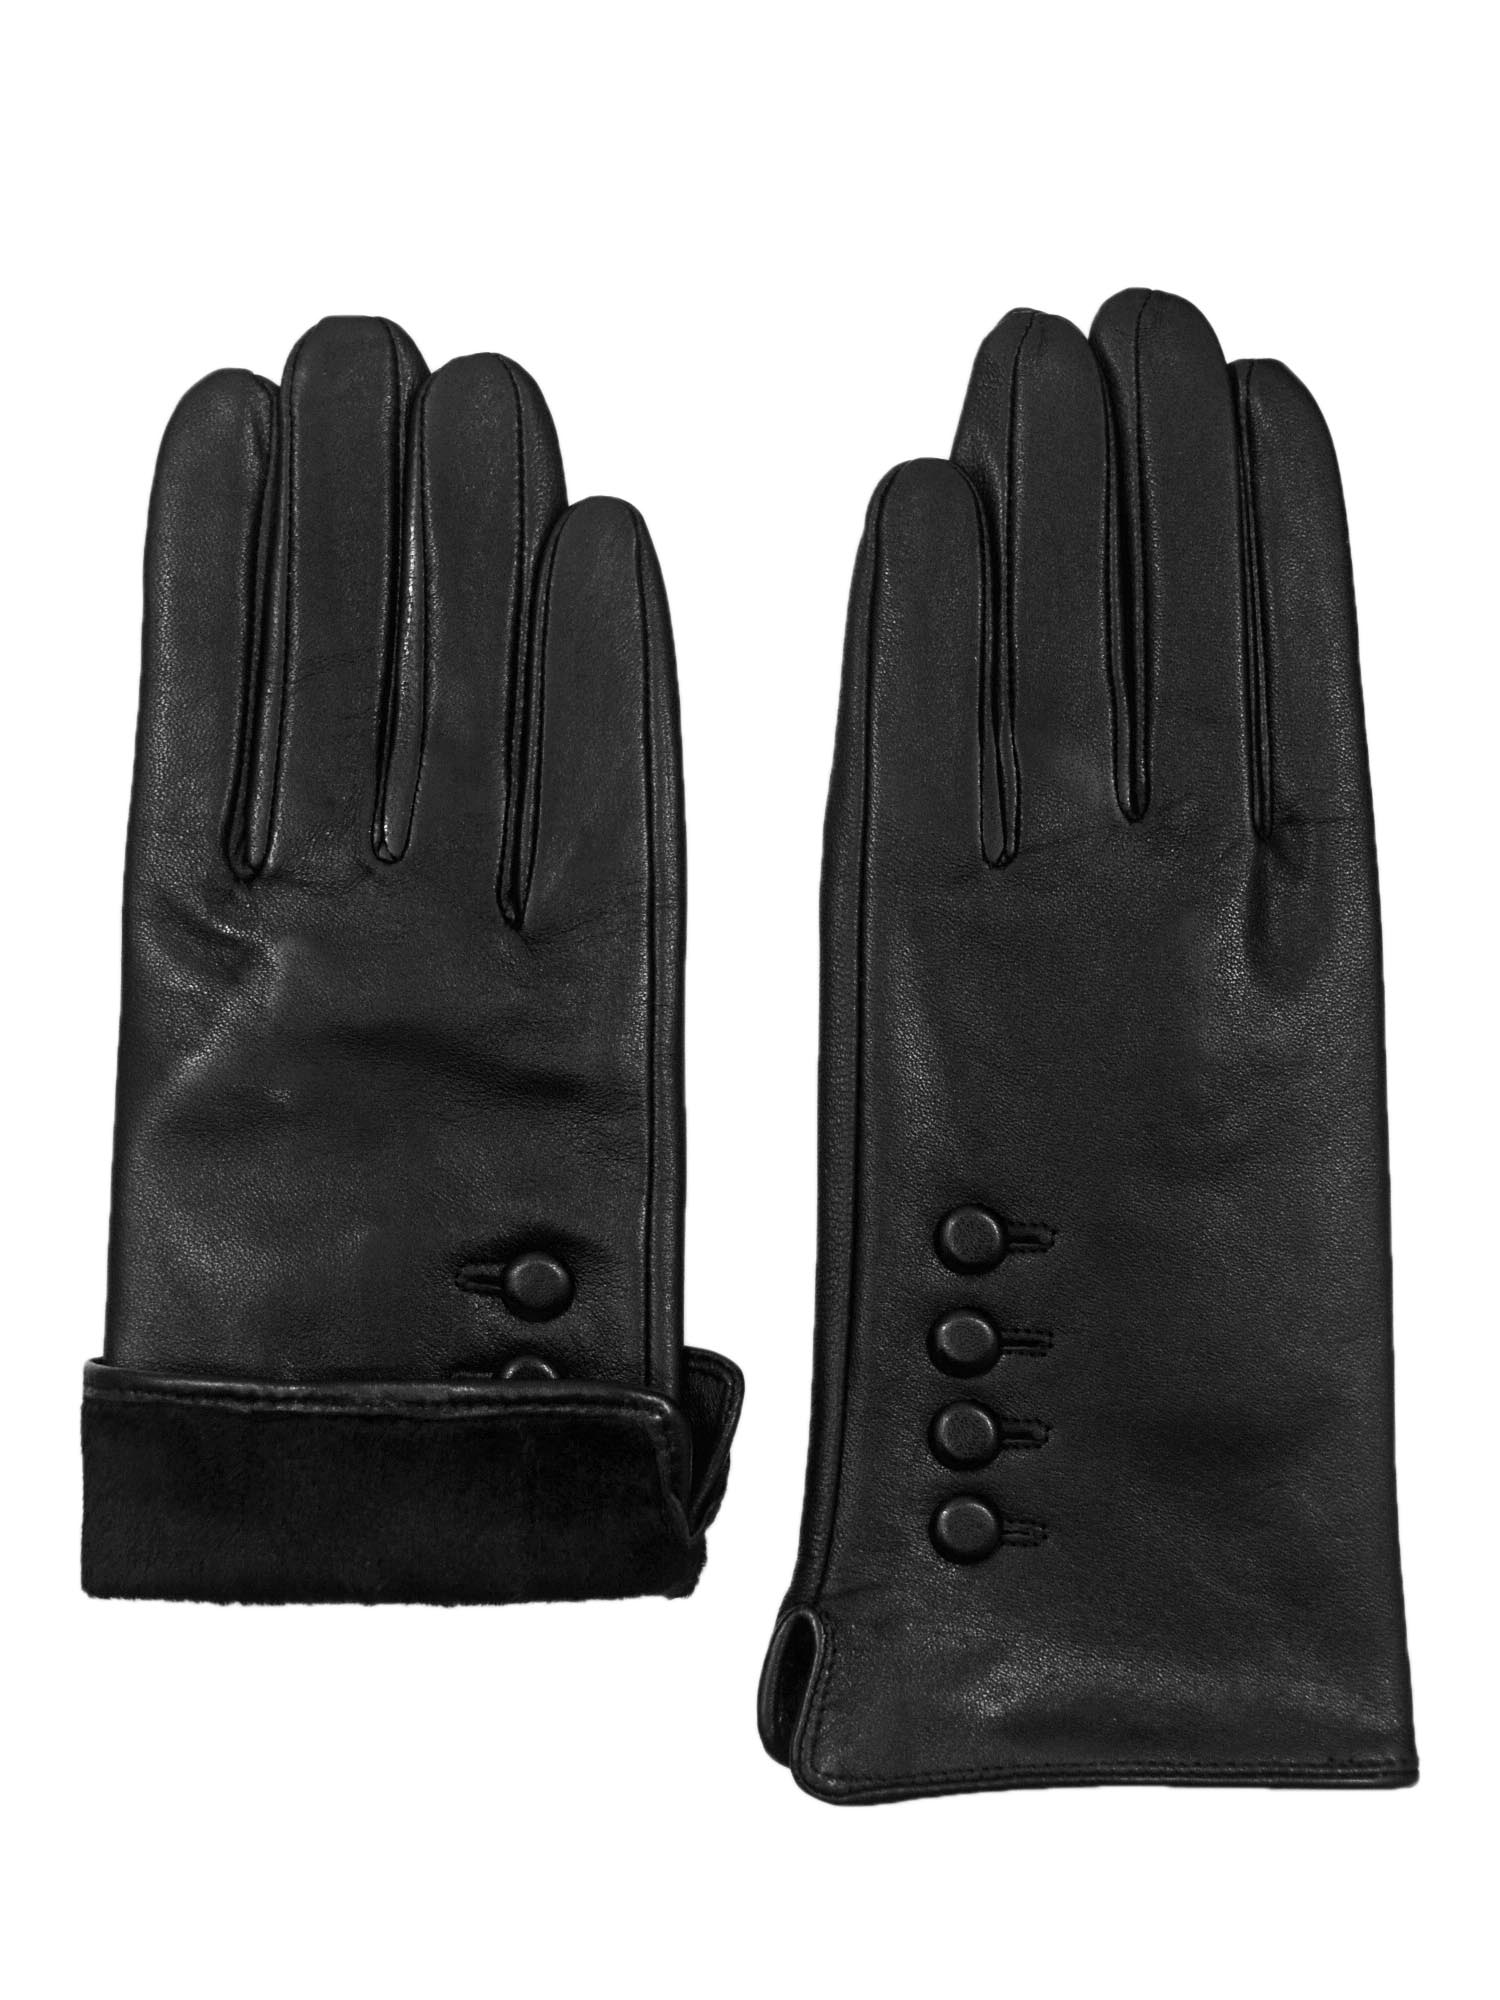 thumbnail 10 - Giromy-Samoni-Womens-Warm-Winter-Plush-Lined-Leather-Driving-Gloves-Black